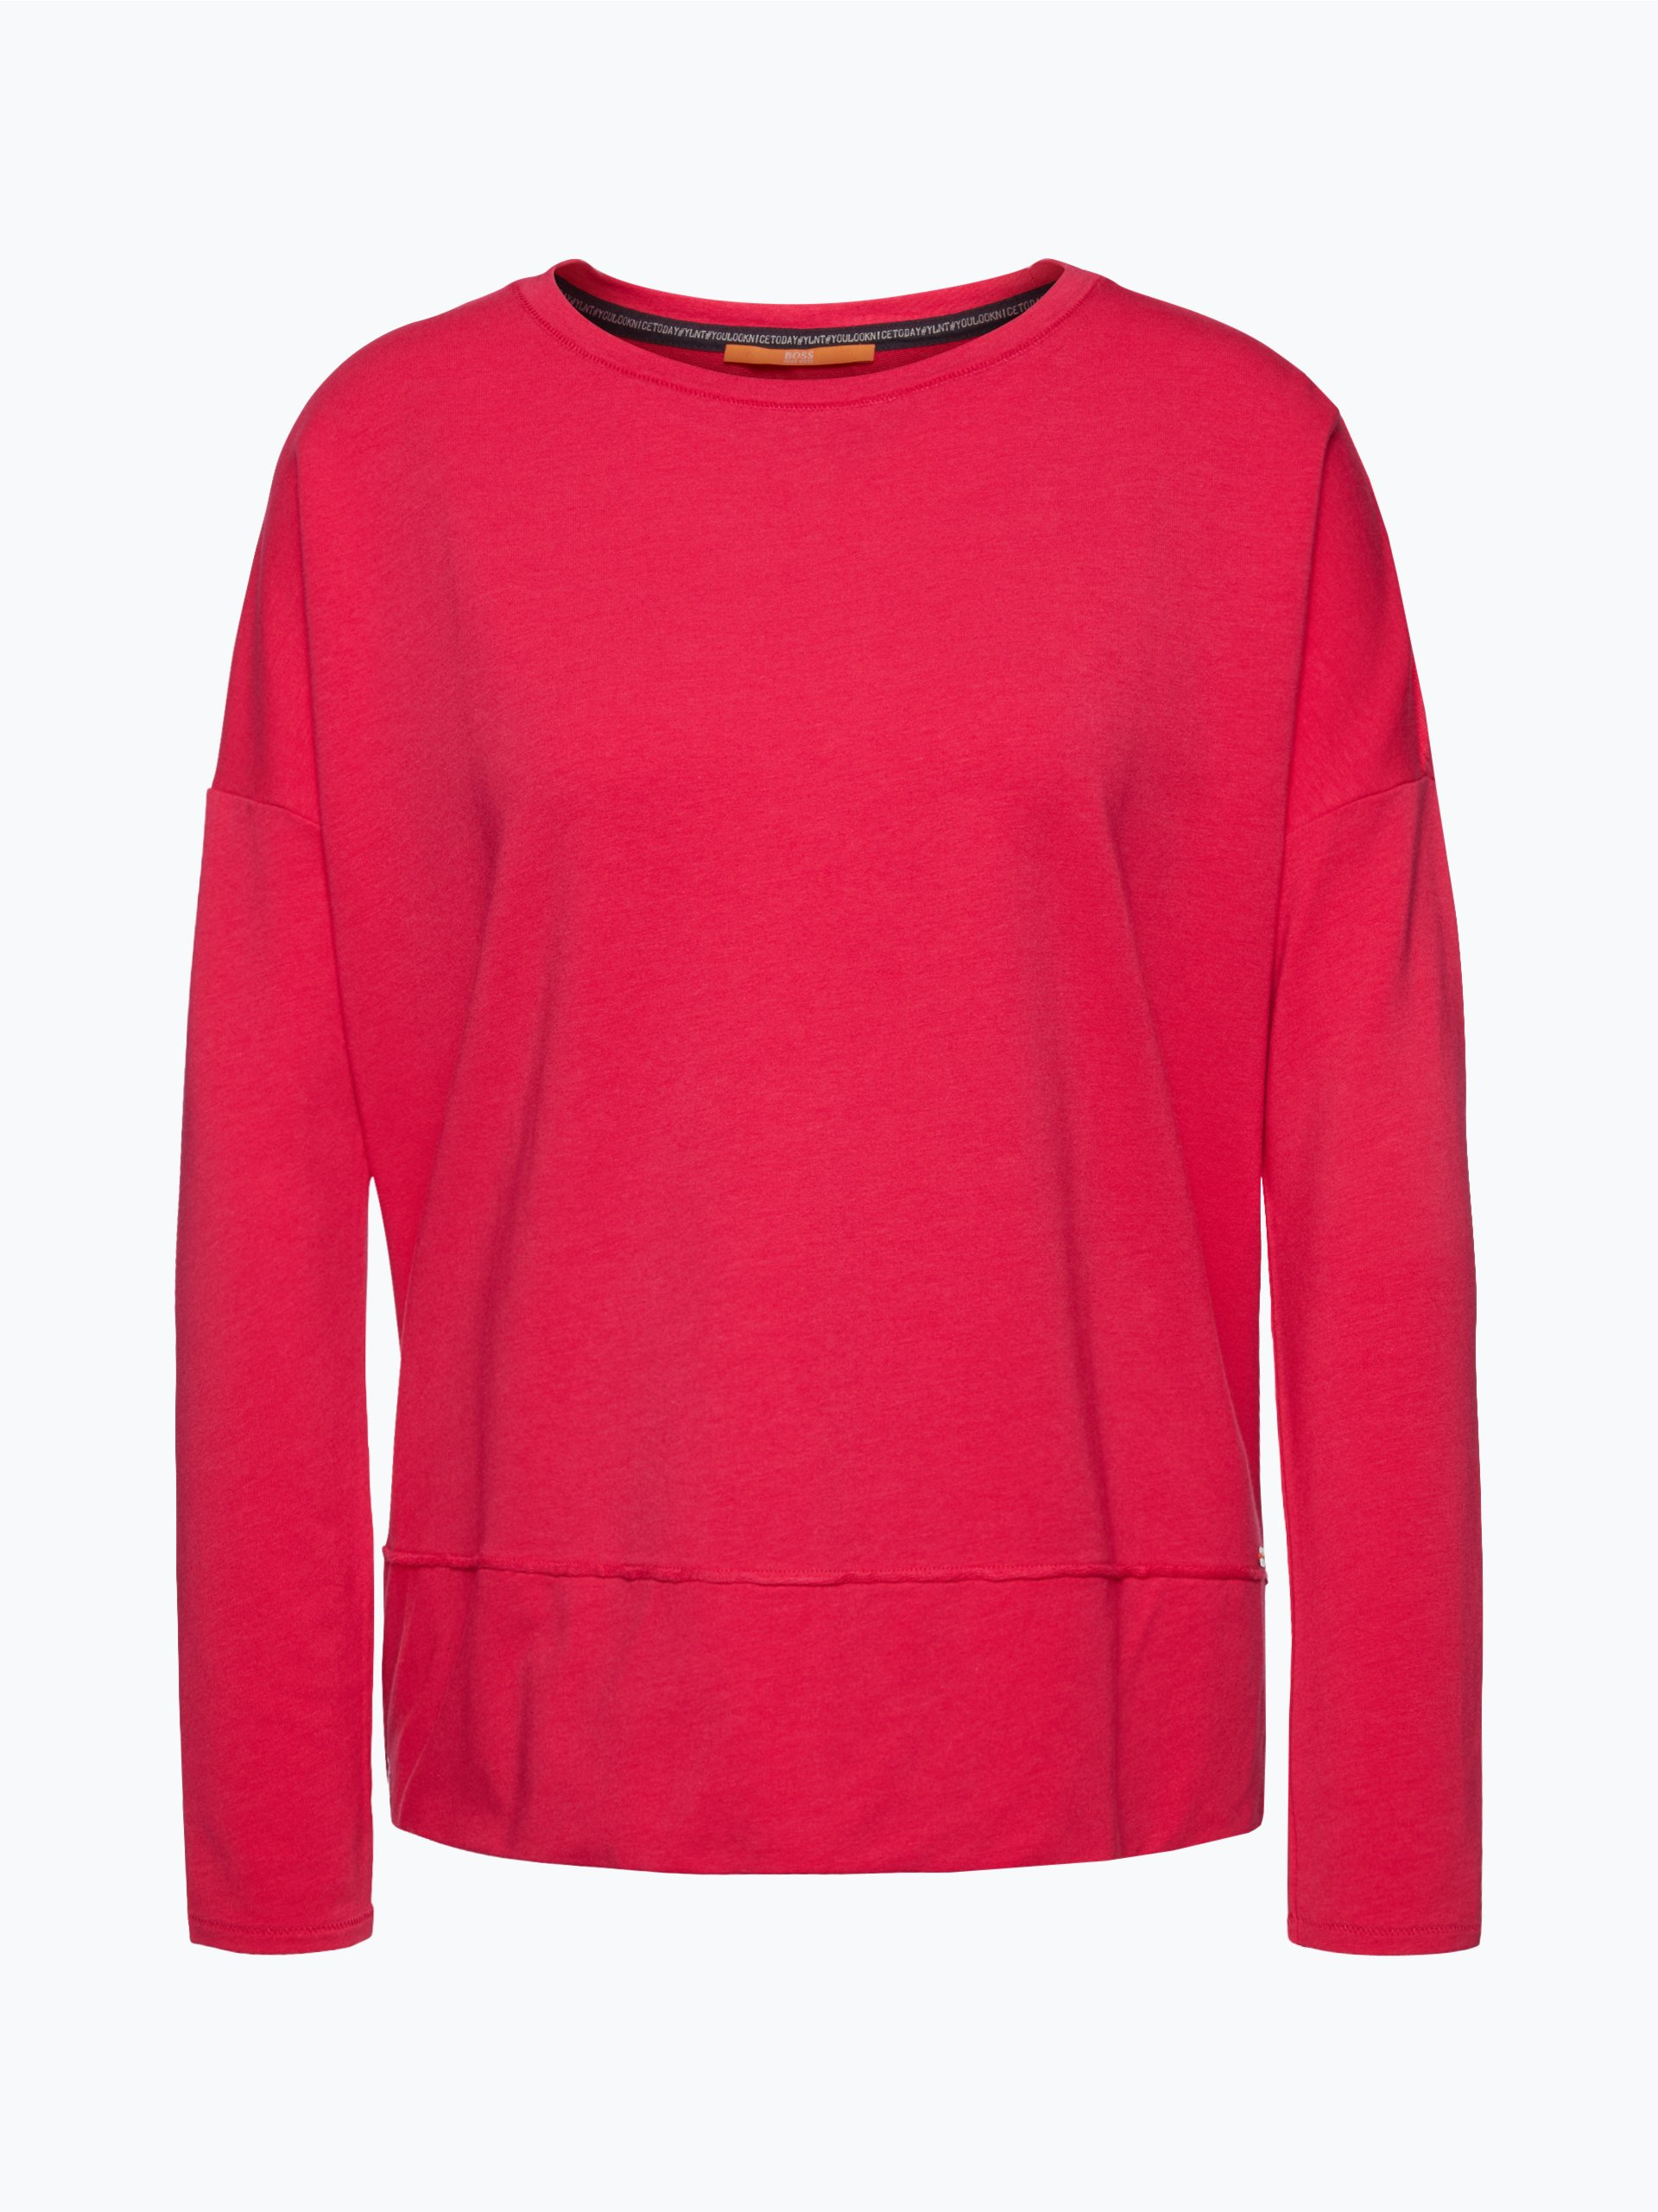 BOSS Casual Damen Sweatshirt - Tersweat